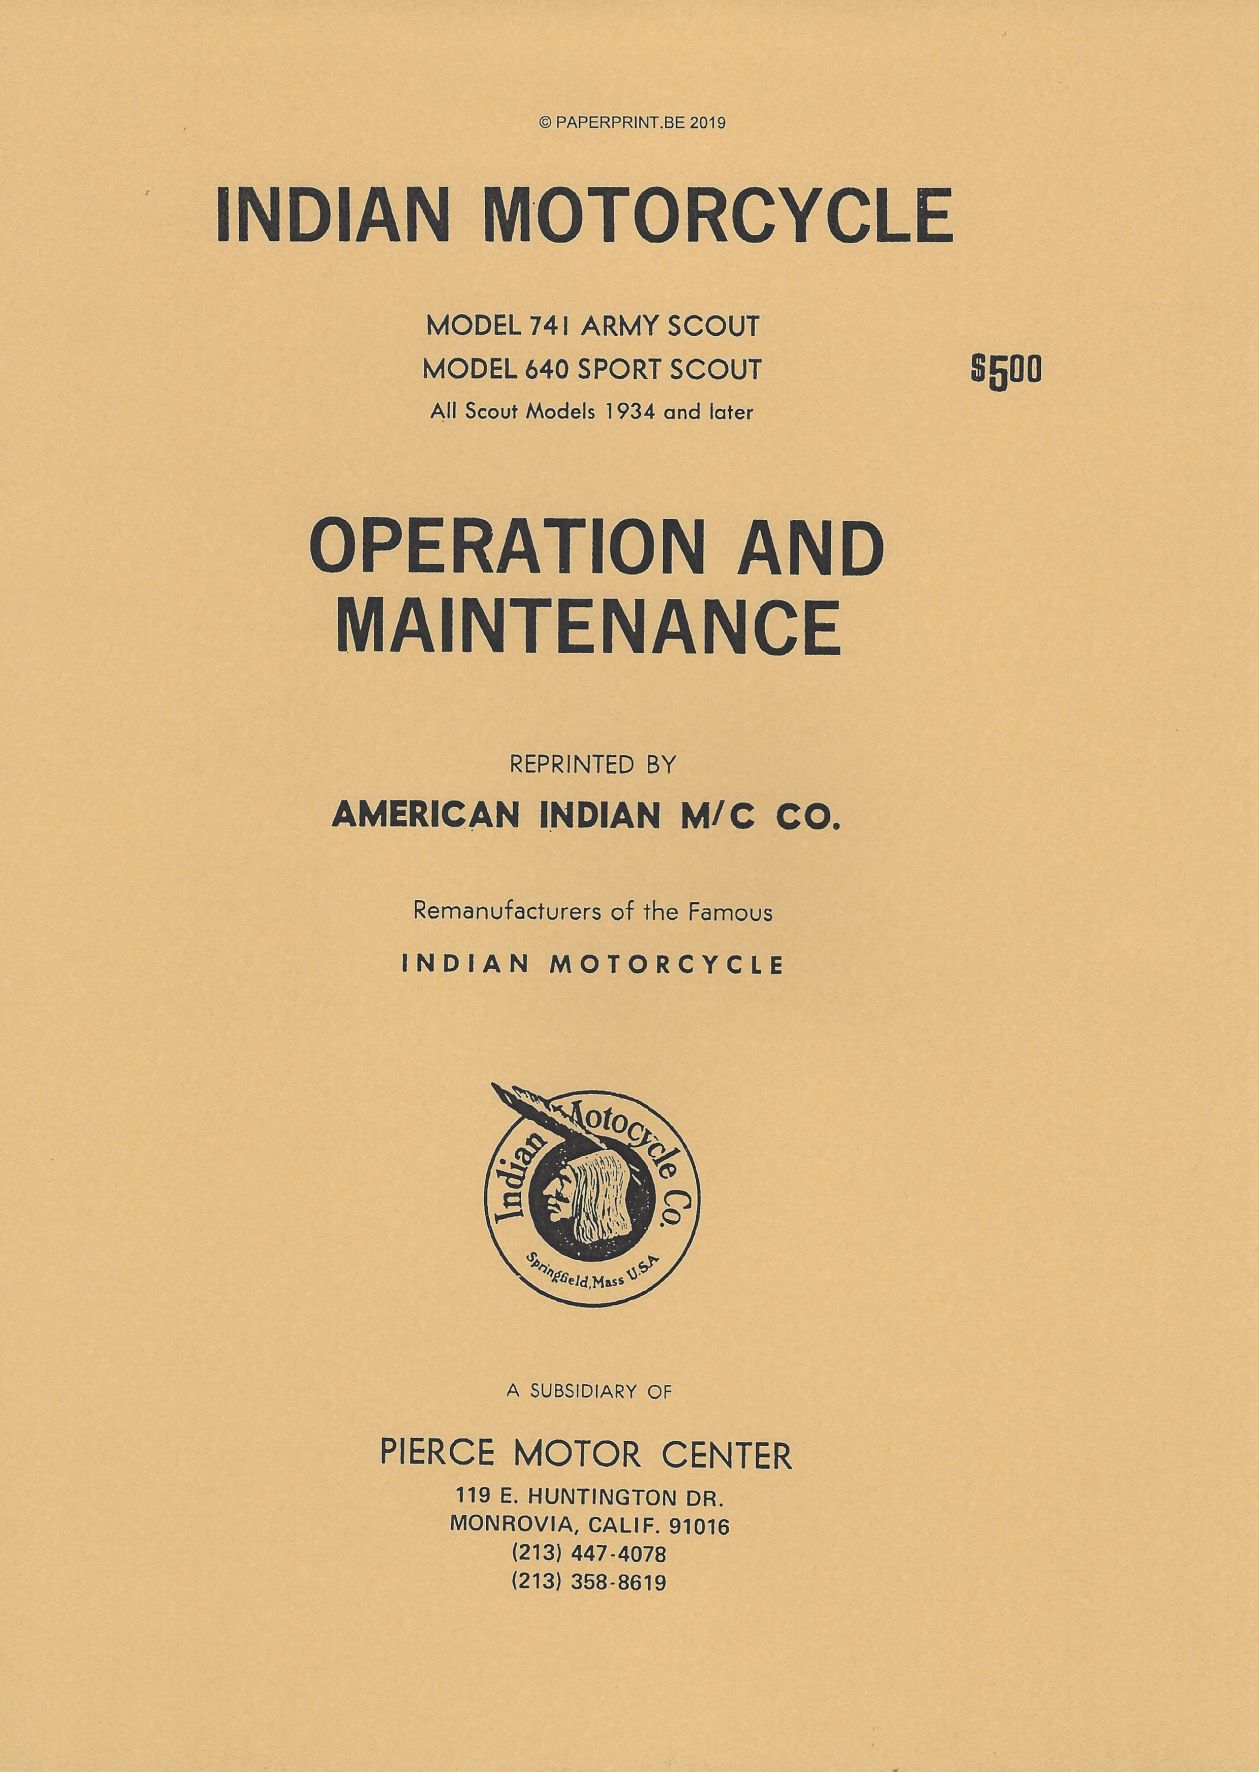 TM 10-1485 US INDIAN 741 AND 640 OPERATION AND MAINTENANCE MANUAL